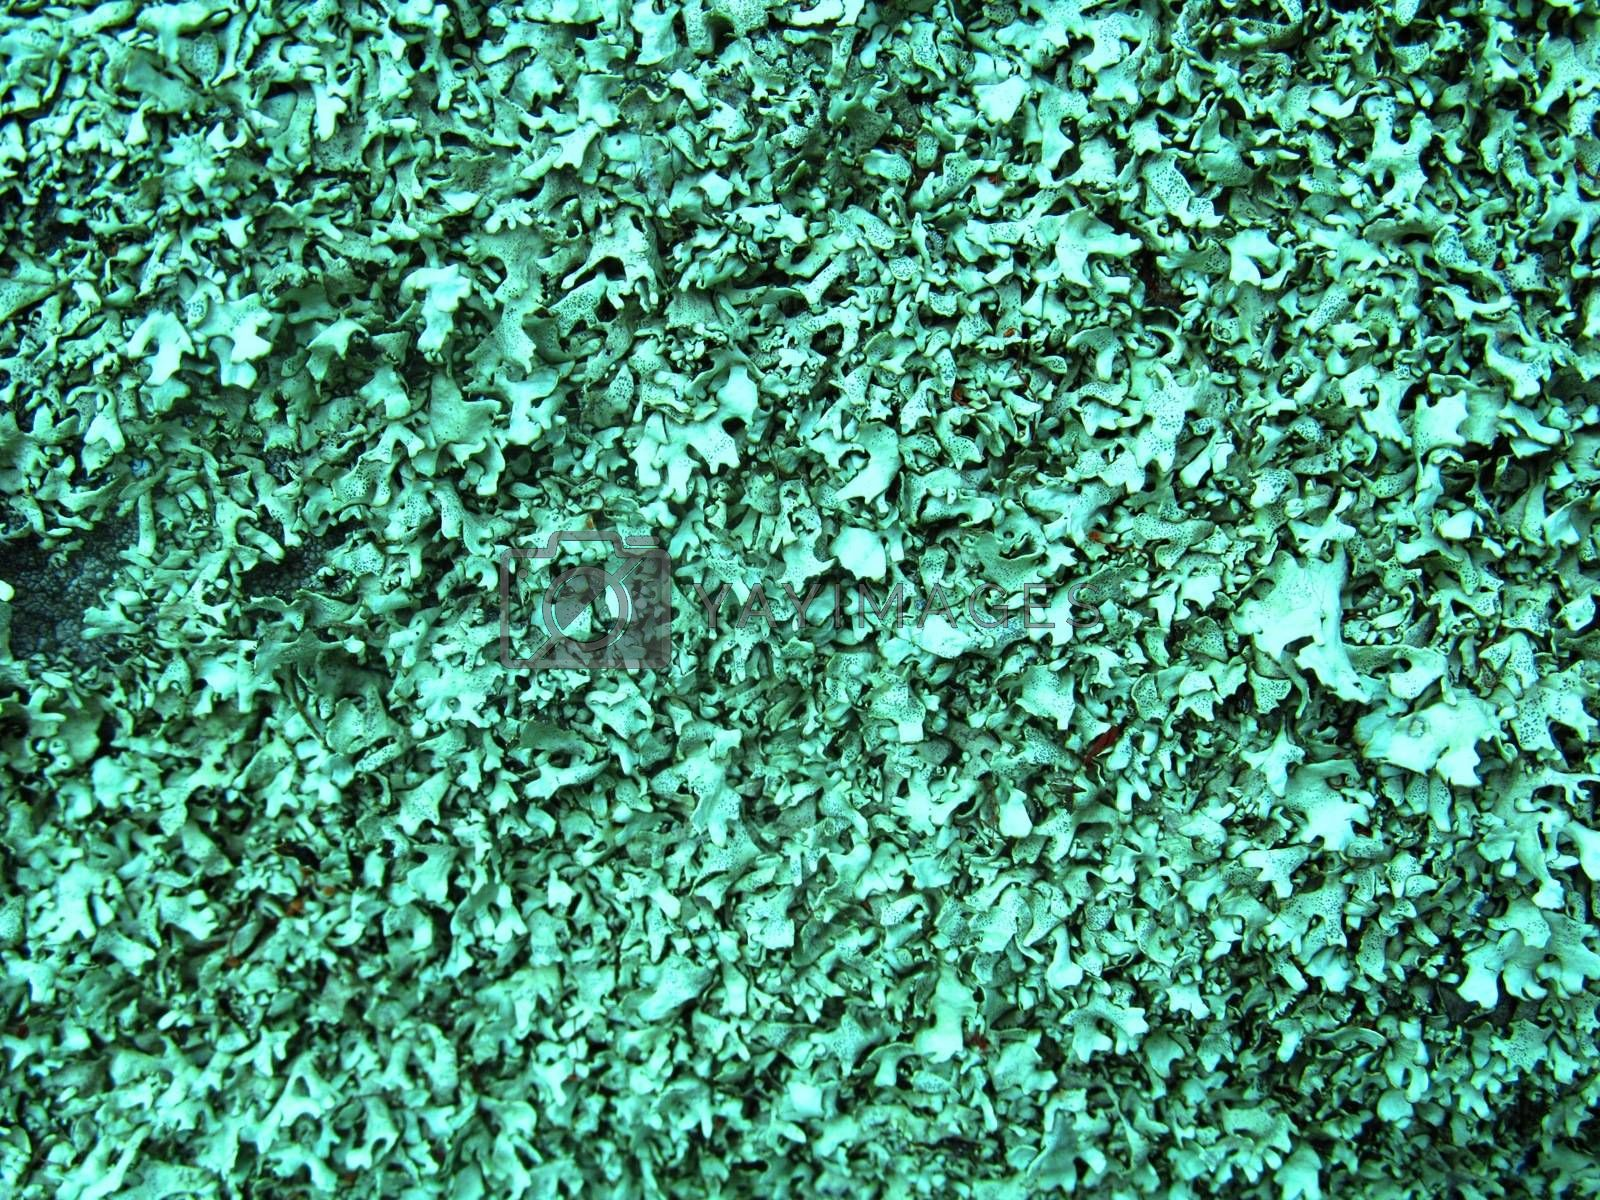 Royalty free image of lichen (Lichenes) texture colored 11 by Aleksey_Gromov